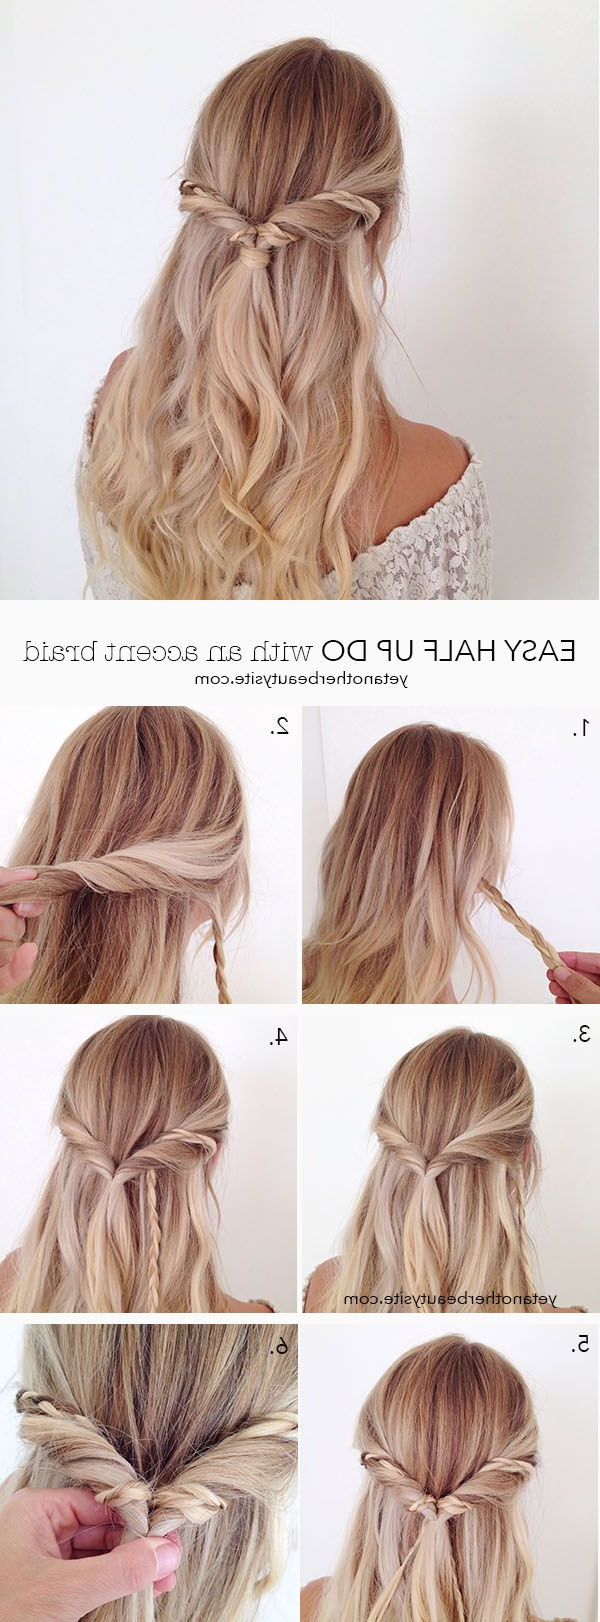 Curly Hair Styles, Hair Styles, Simple Prom In Most Current Accent Braid Prom Updos (View 2 of 20)